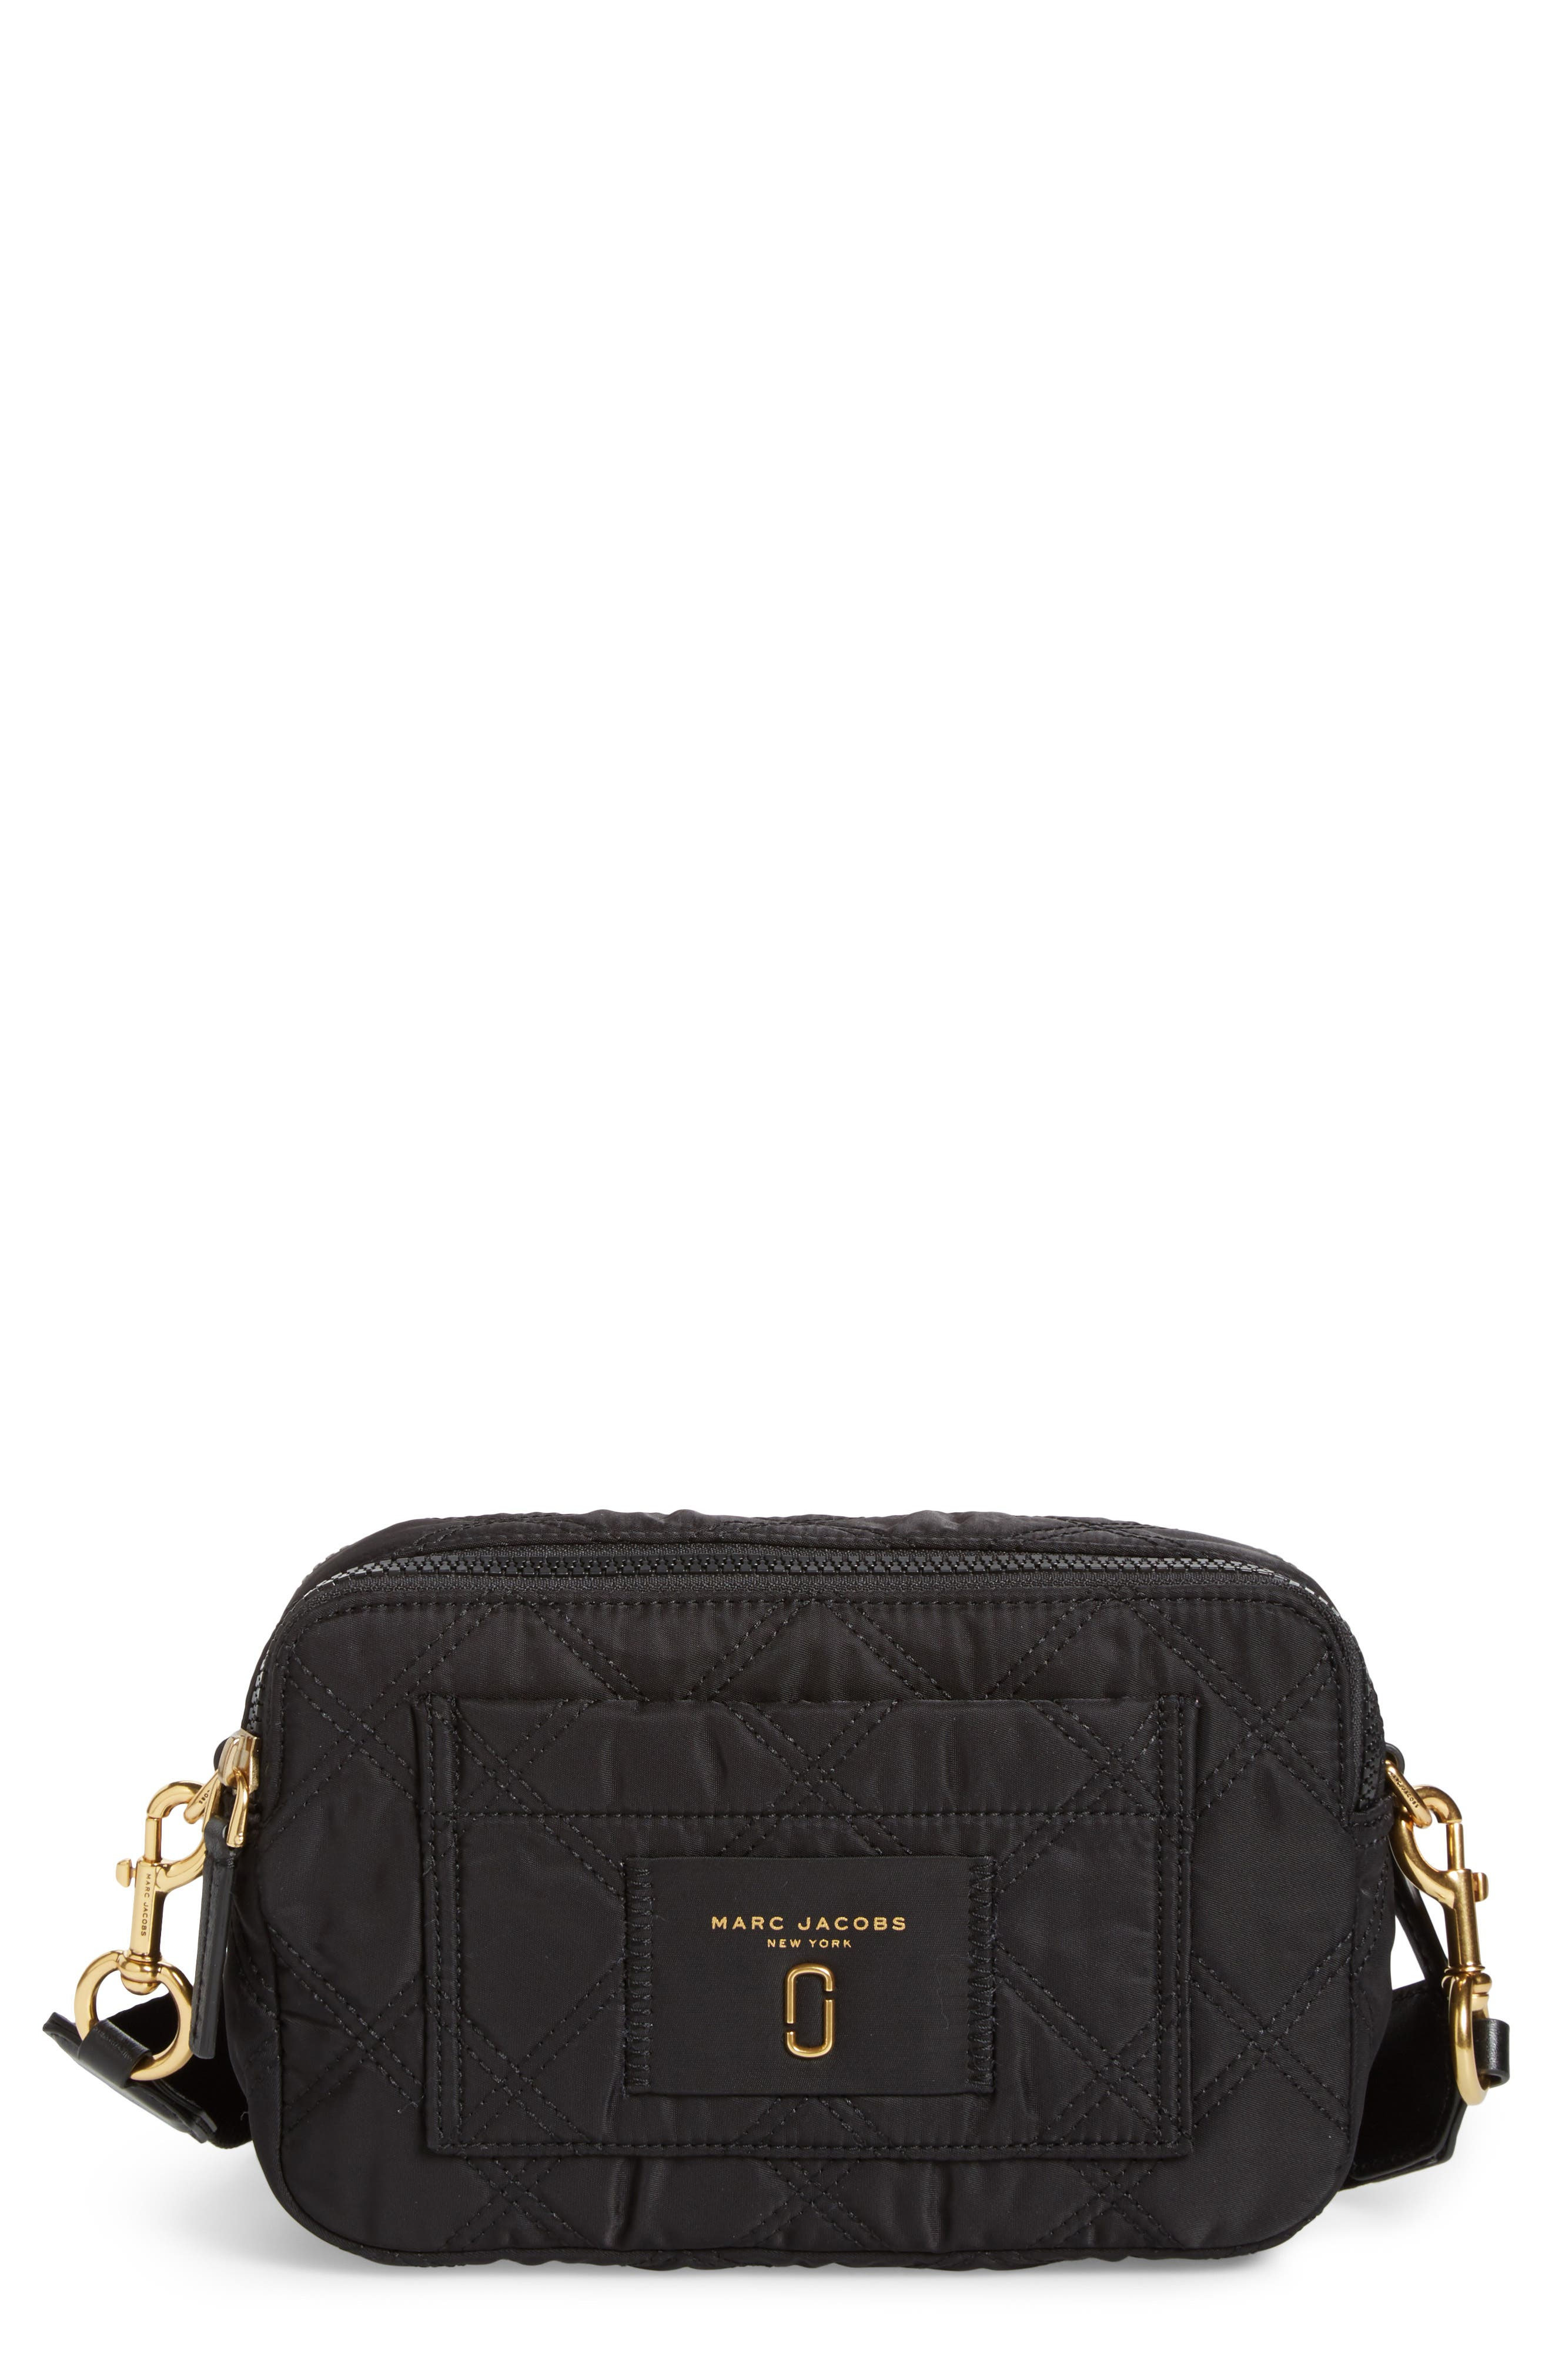 Main Image - MARC JACOBS Nylon Knot Crossbody Bag